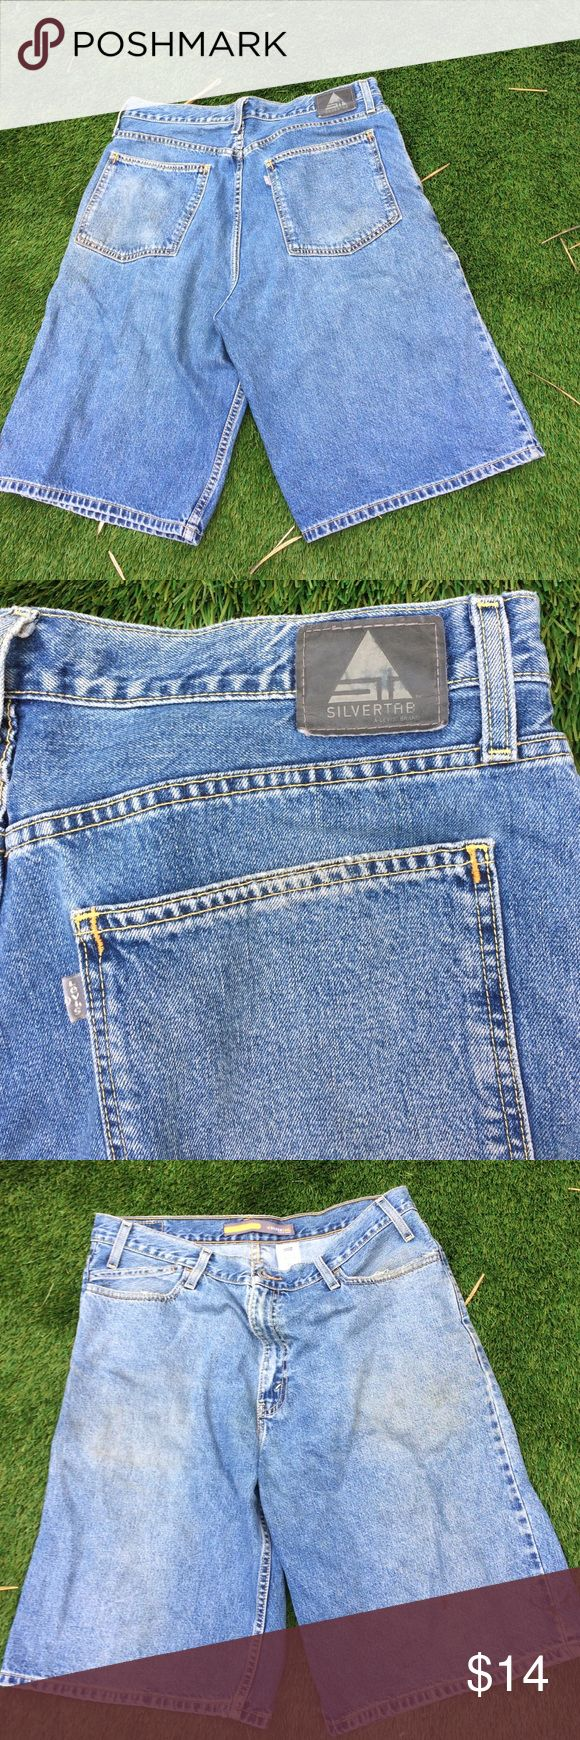 Men's Levi's silver tag low & loose size 36 worn | Shorts, Levis ...